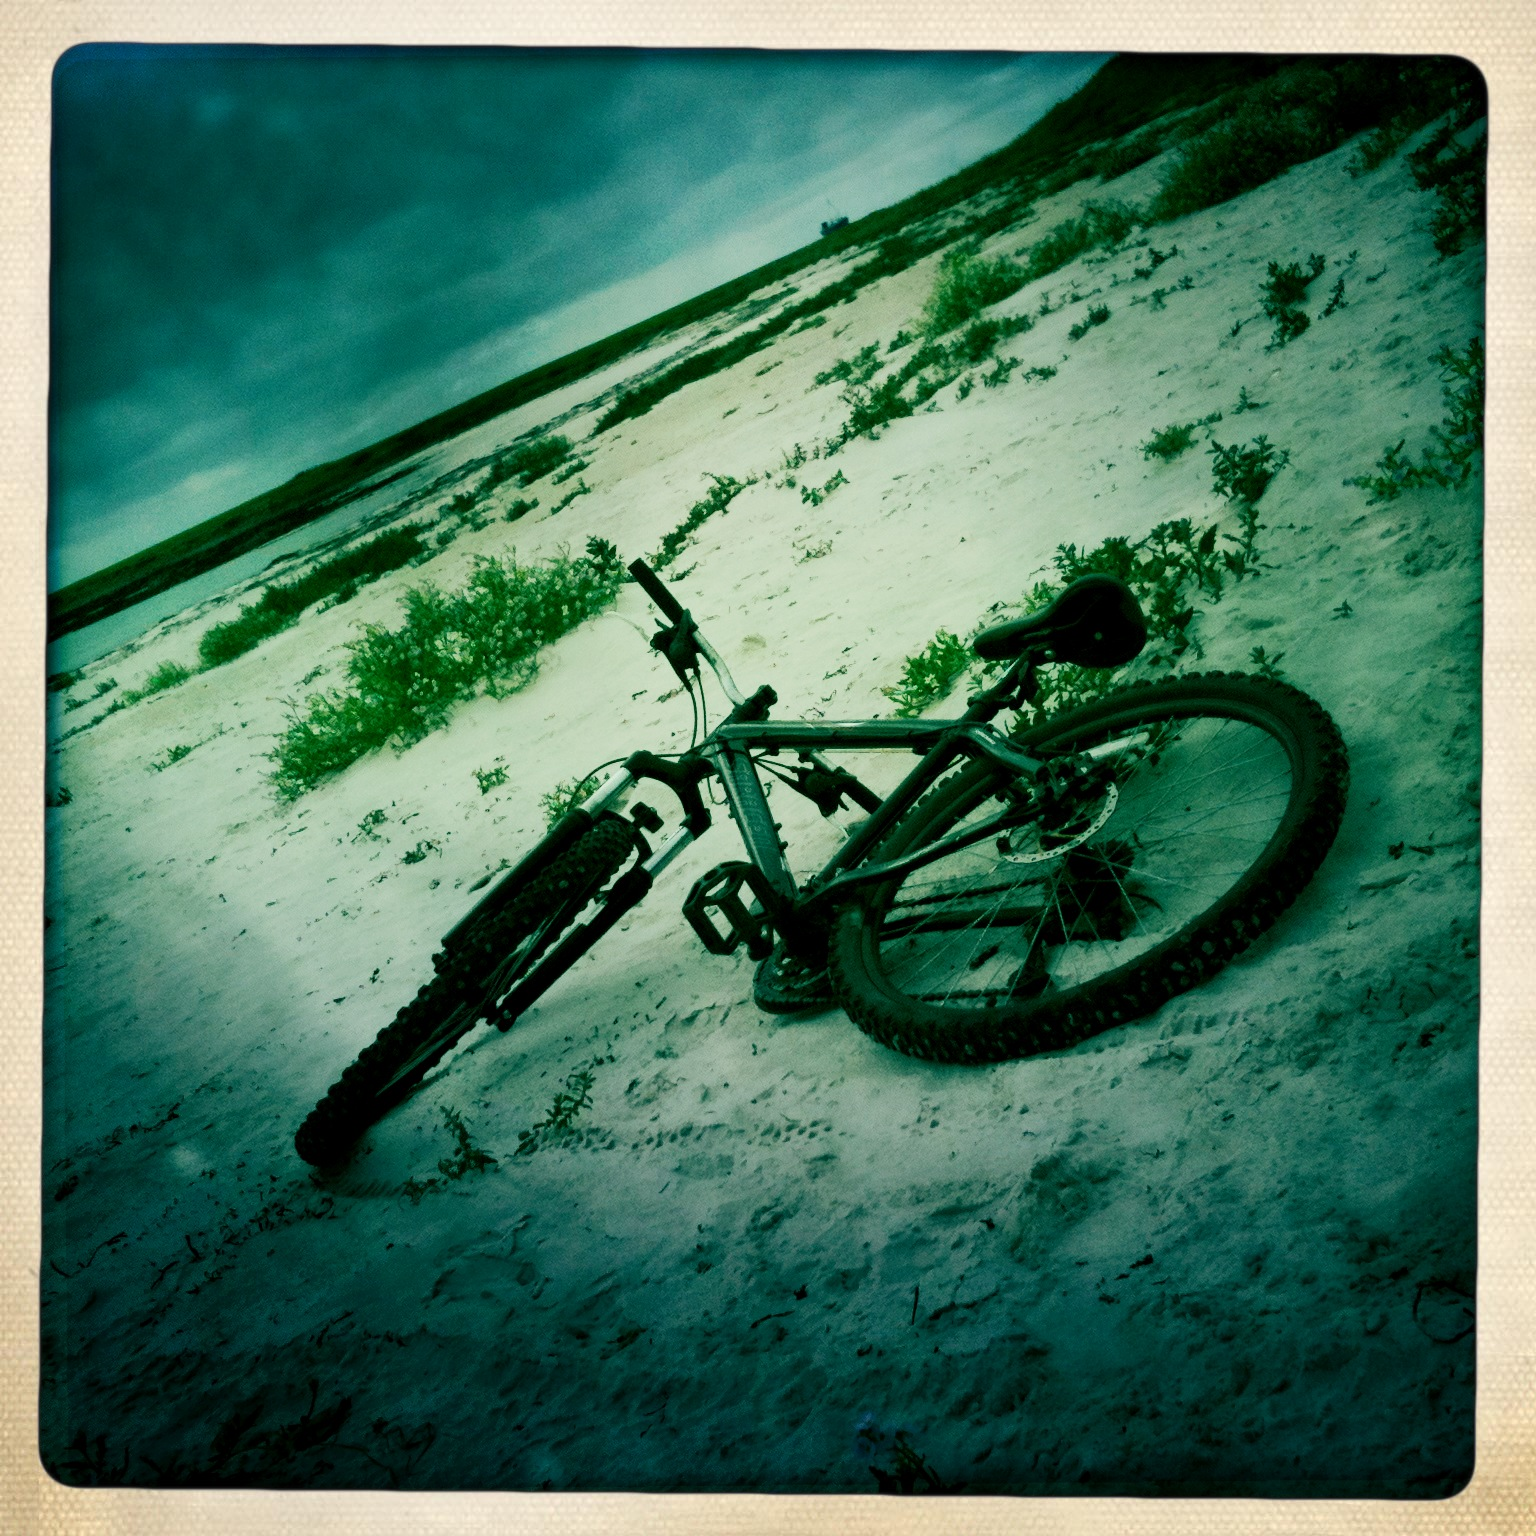 Bike. Beach. Breathtaking.